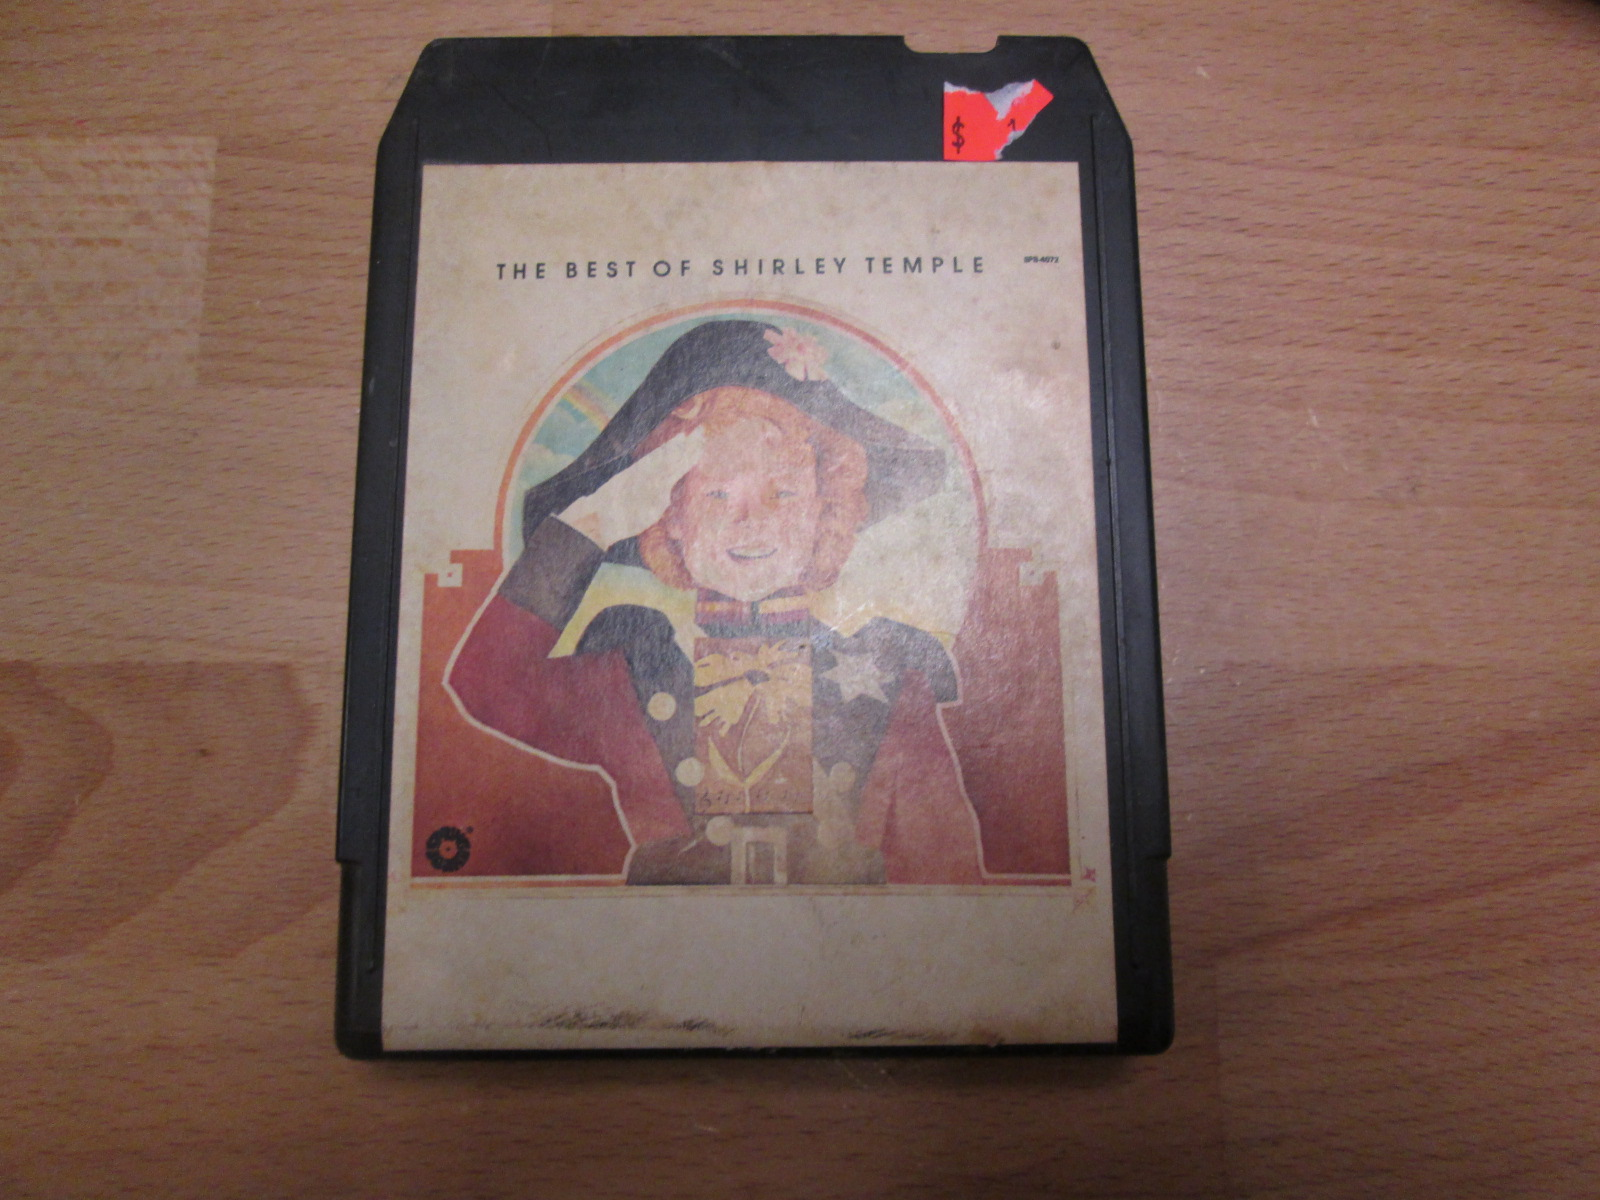 8-TRACK Tape The Best Of Shirley Temple